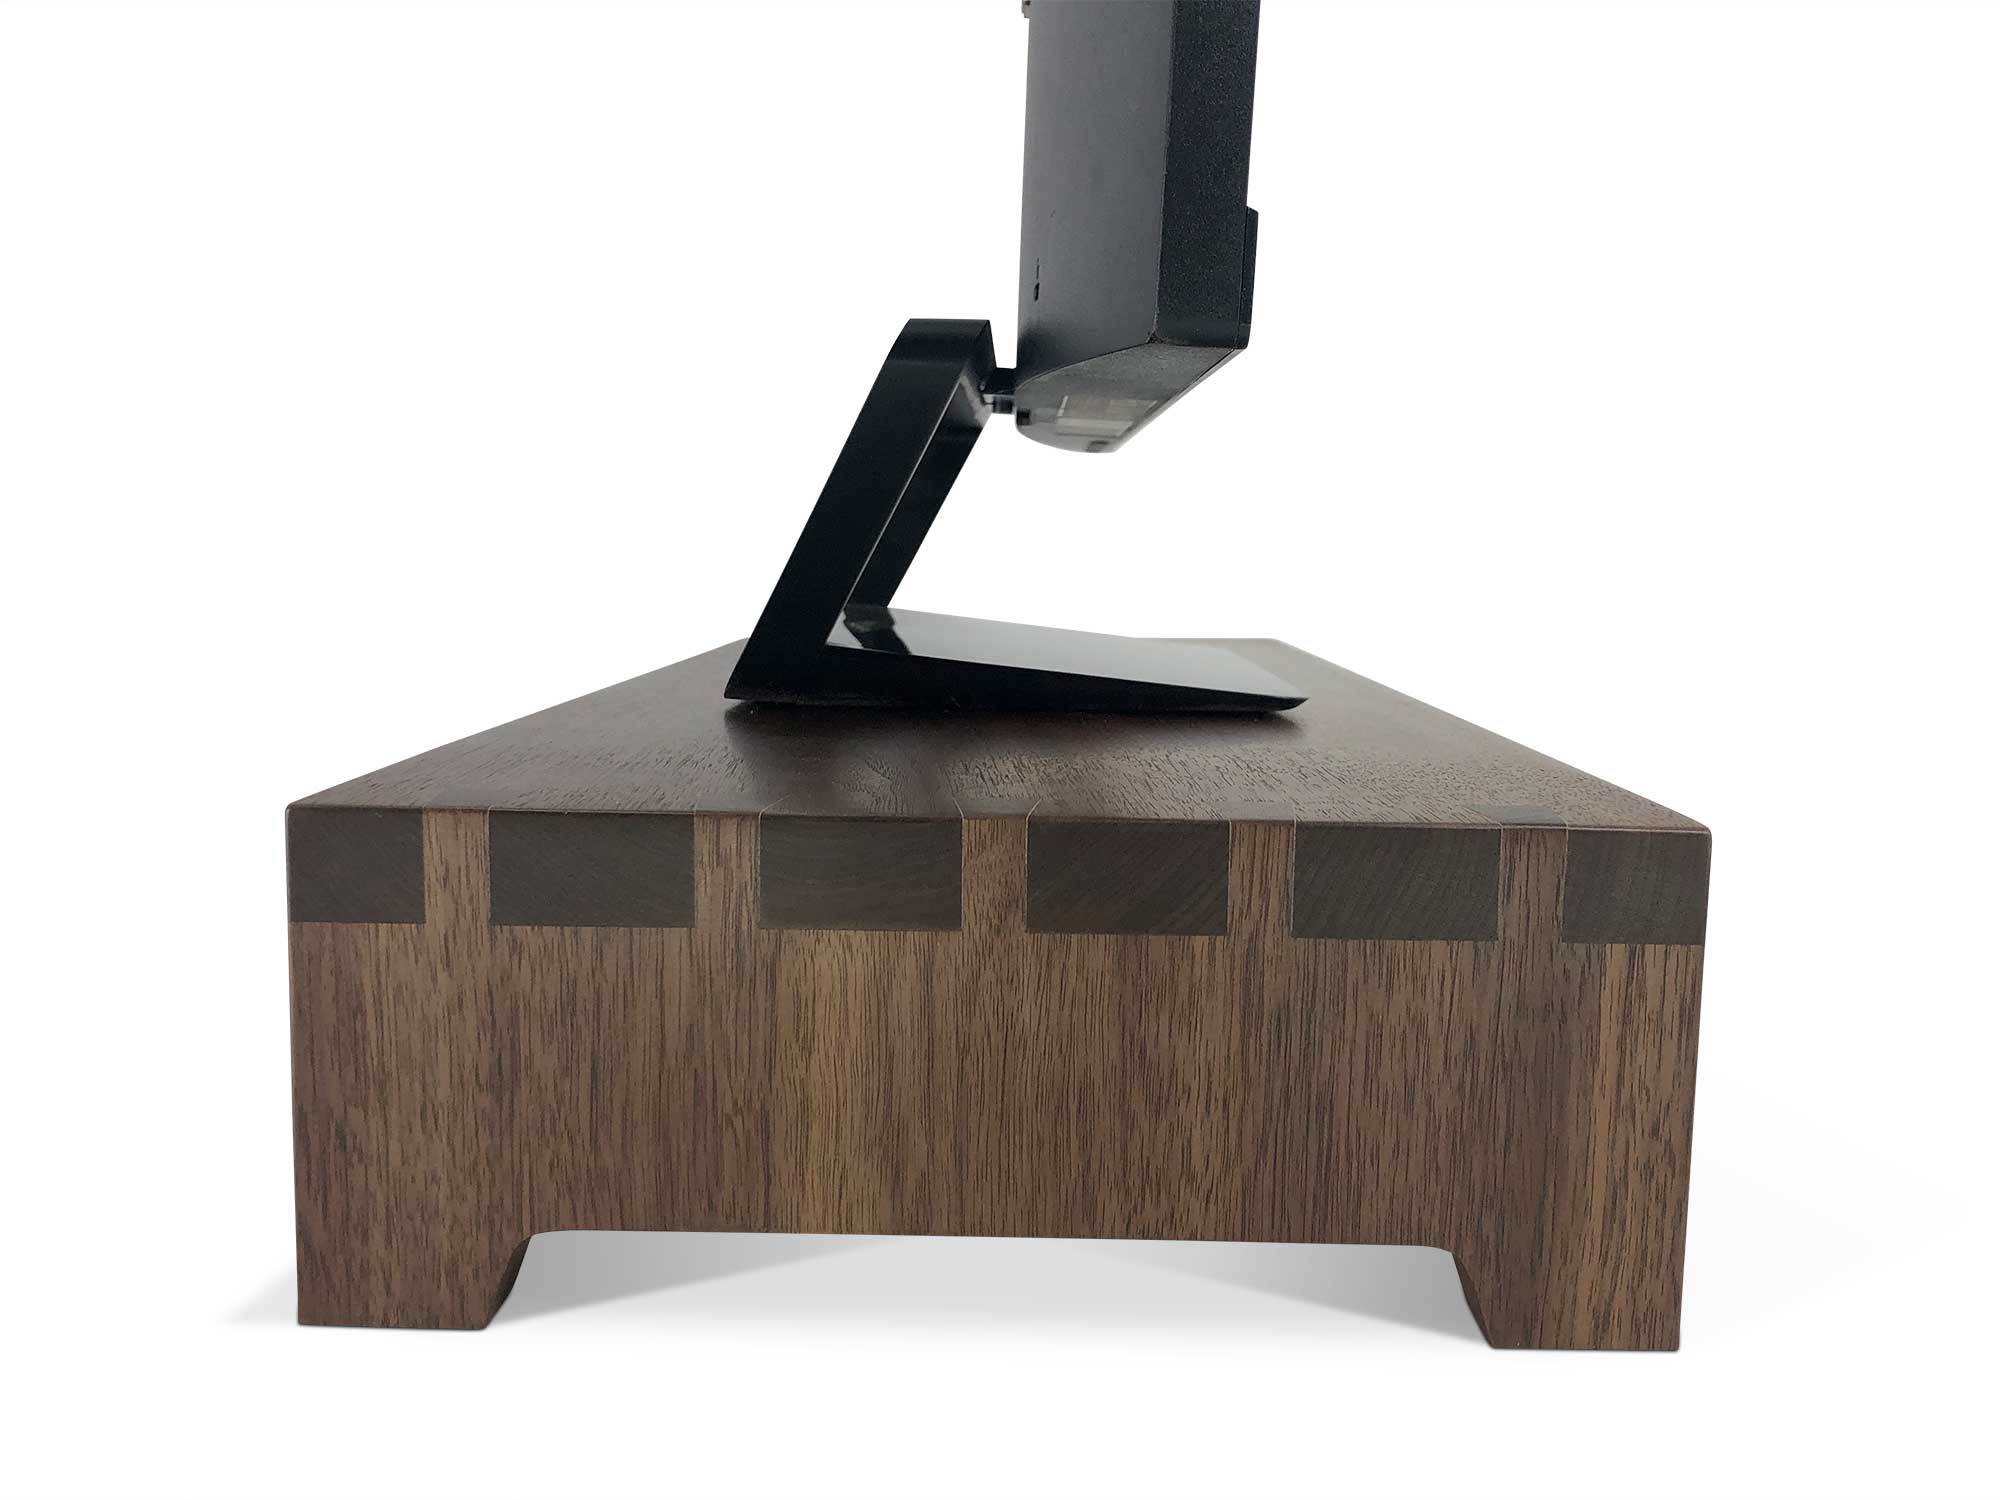 PLANET 3 Walnut –Urban Wood Desktop Computer Stand